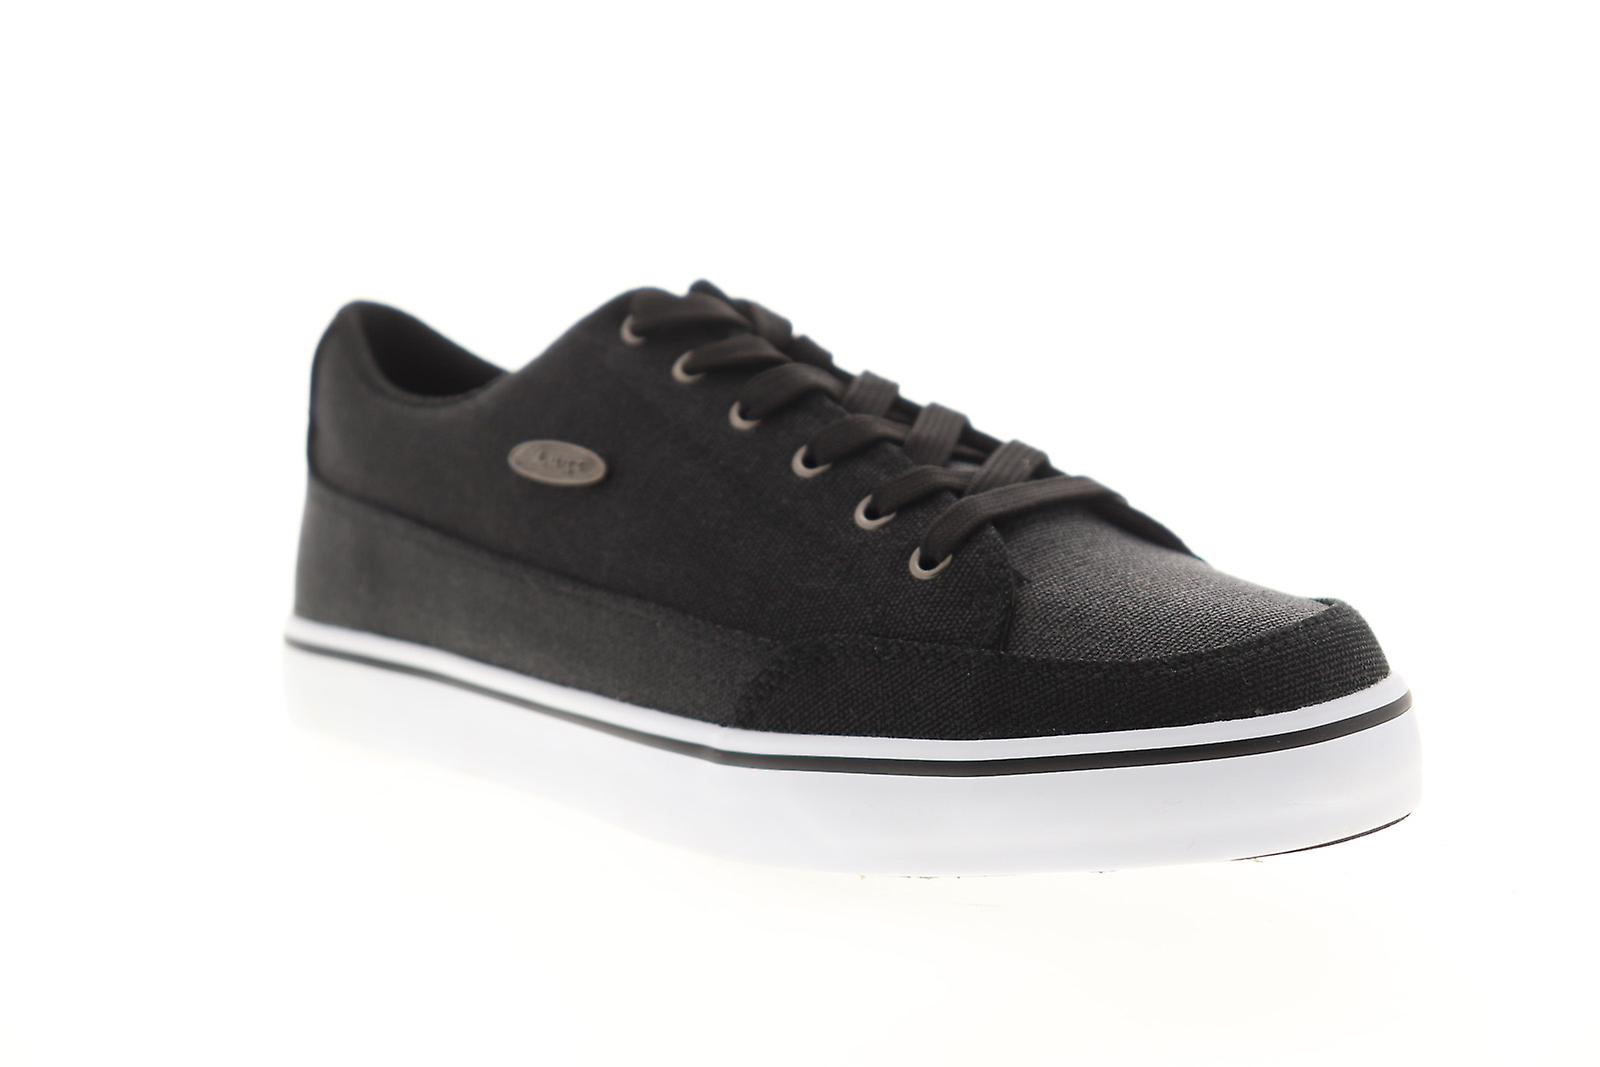 Lugz Colony Cc Mens Black Canvas Lace Up Low Top Sneakers Chaussures